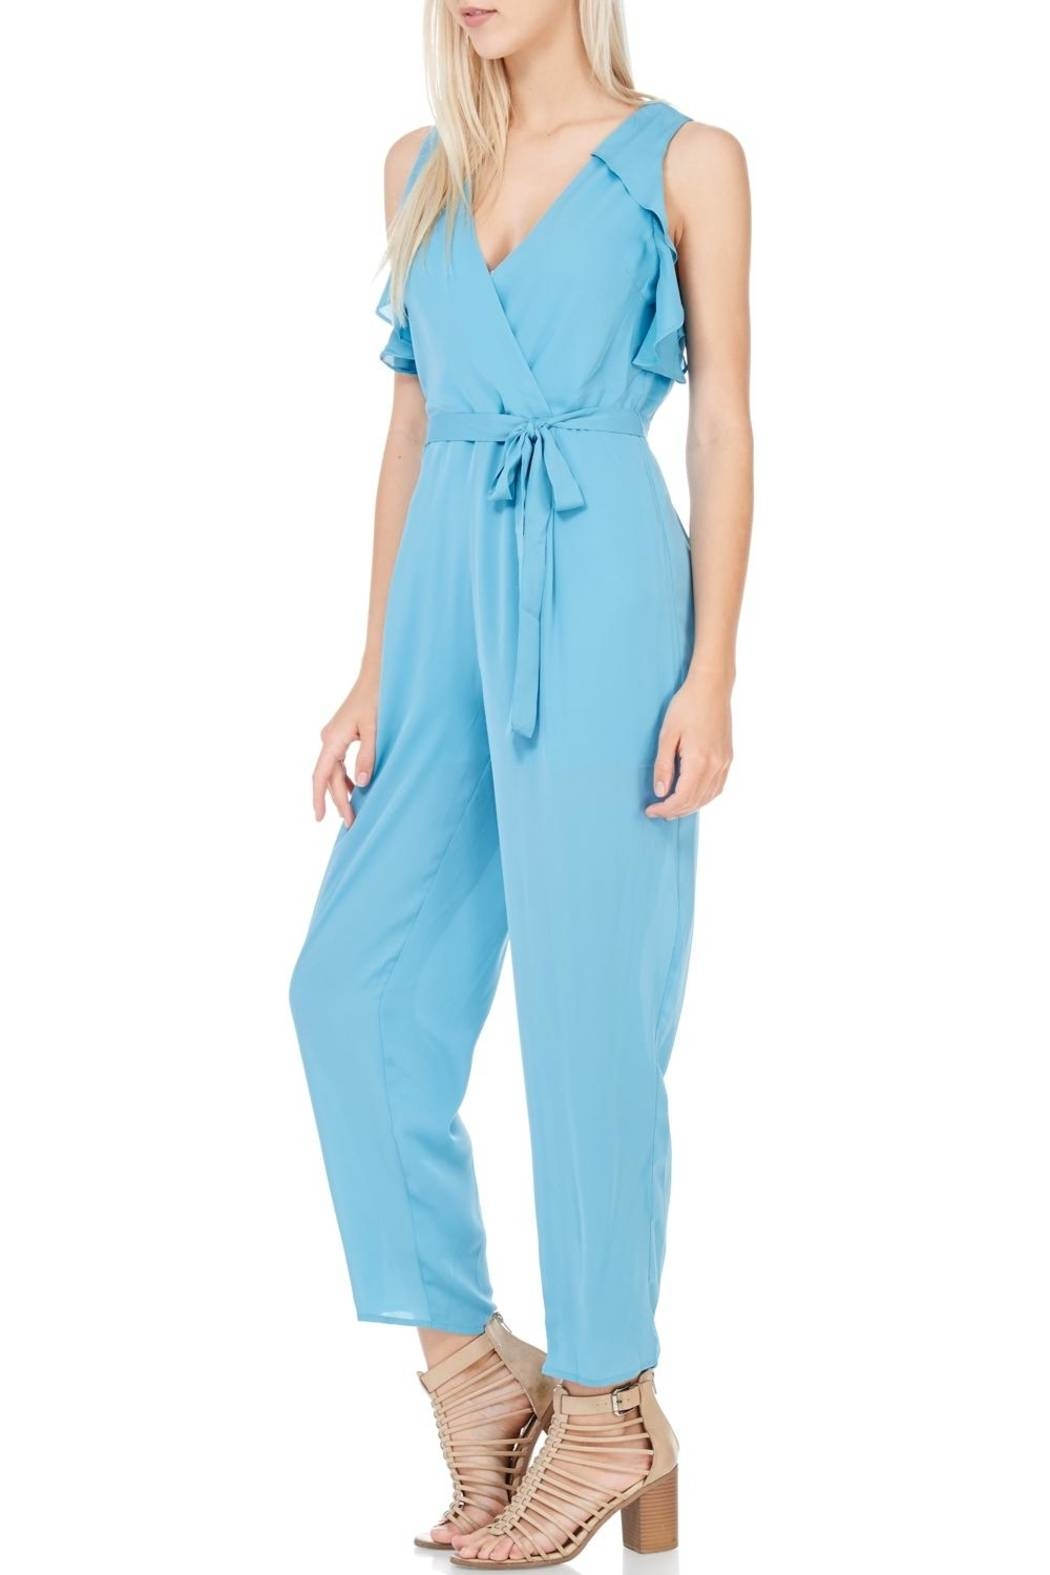 Everly Dusty Blue Lined Jumpsuit - Front Full Image